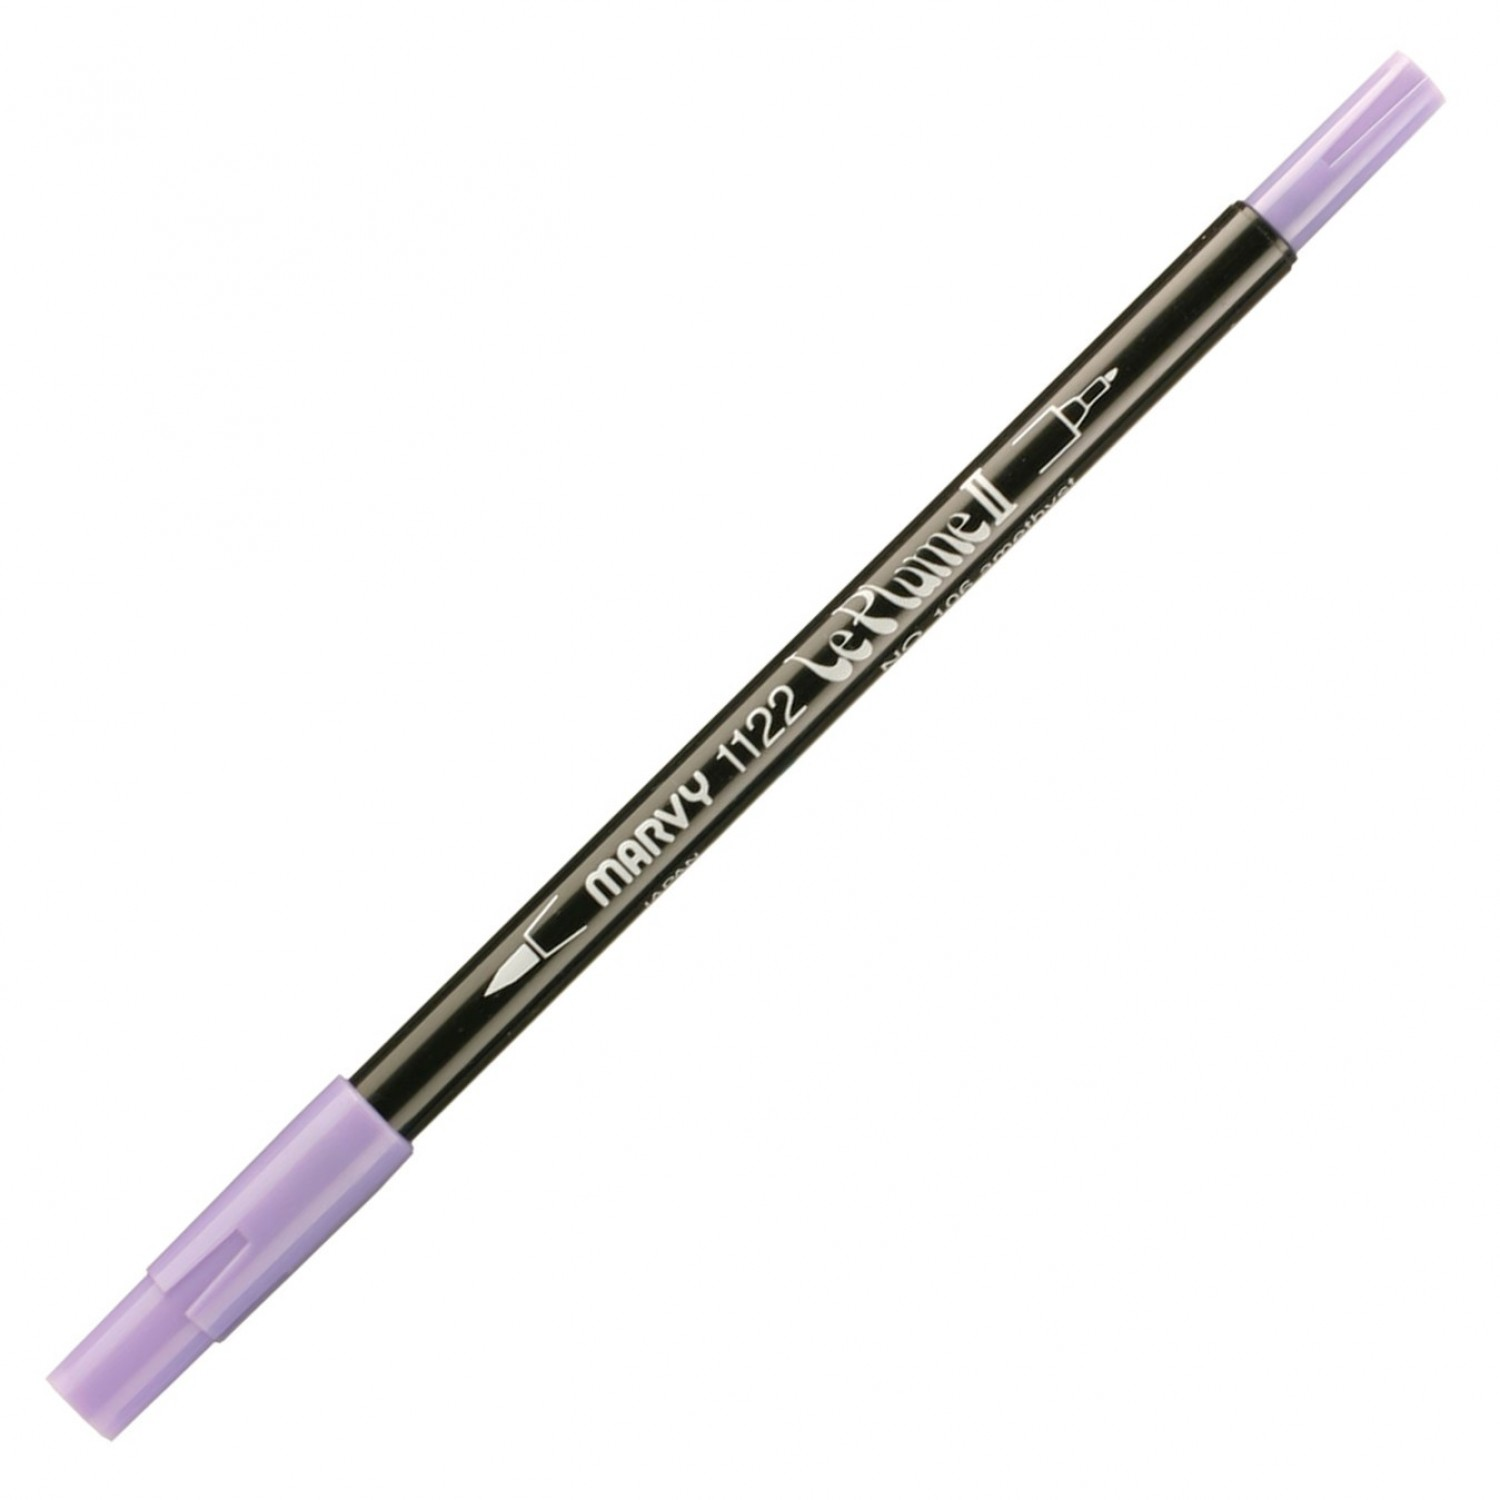 Marvy Le Plume II Double Ended Watercolor Marker, Amethyst